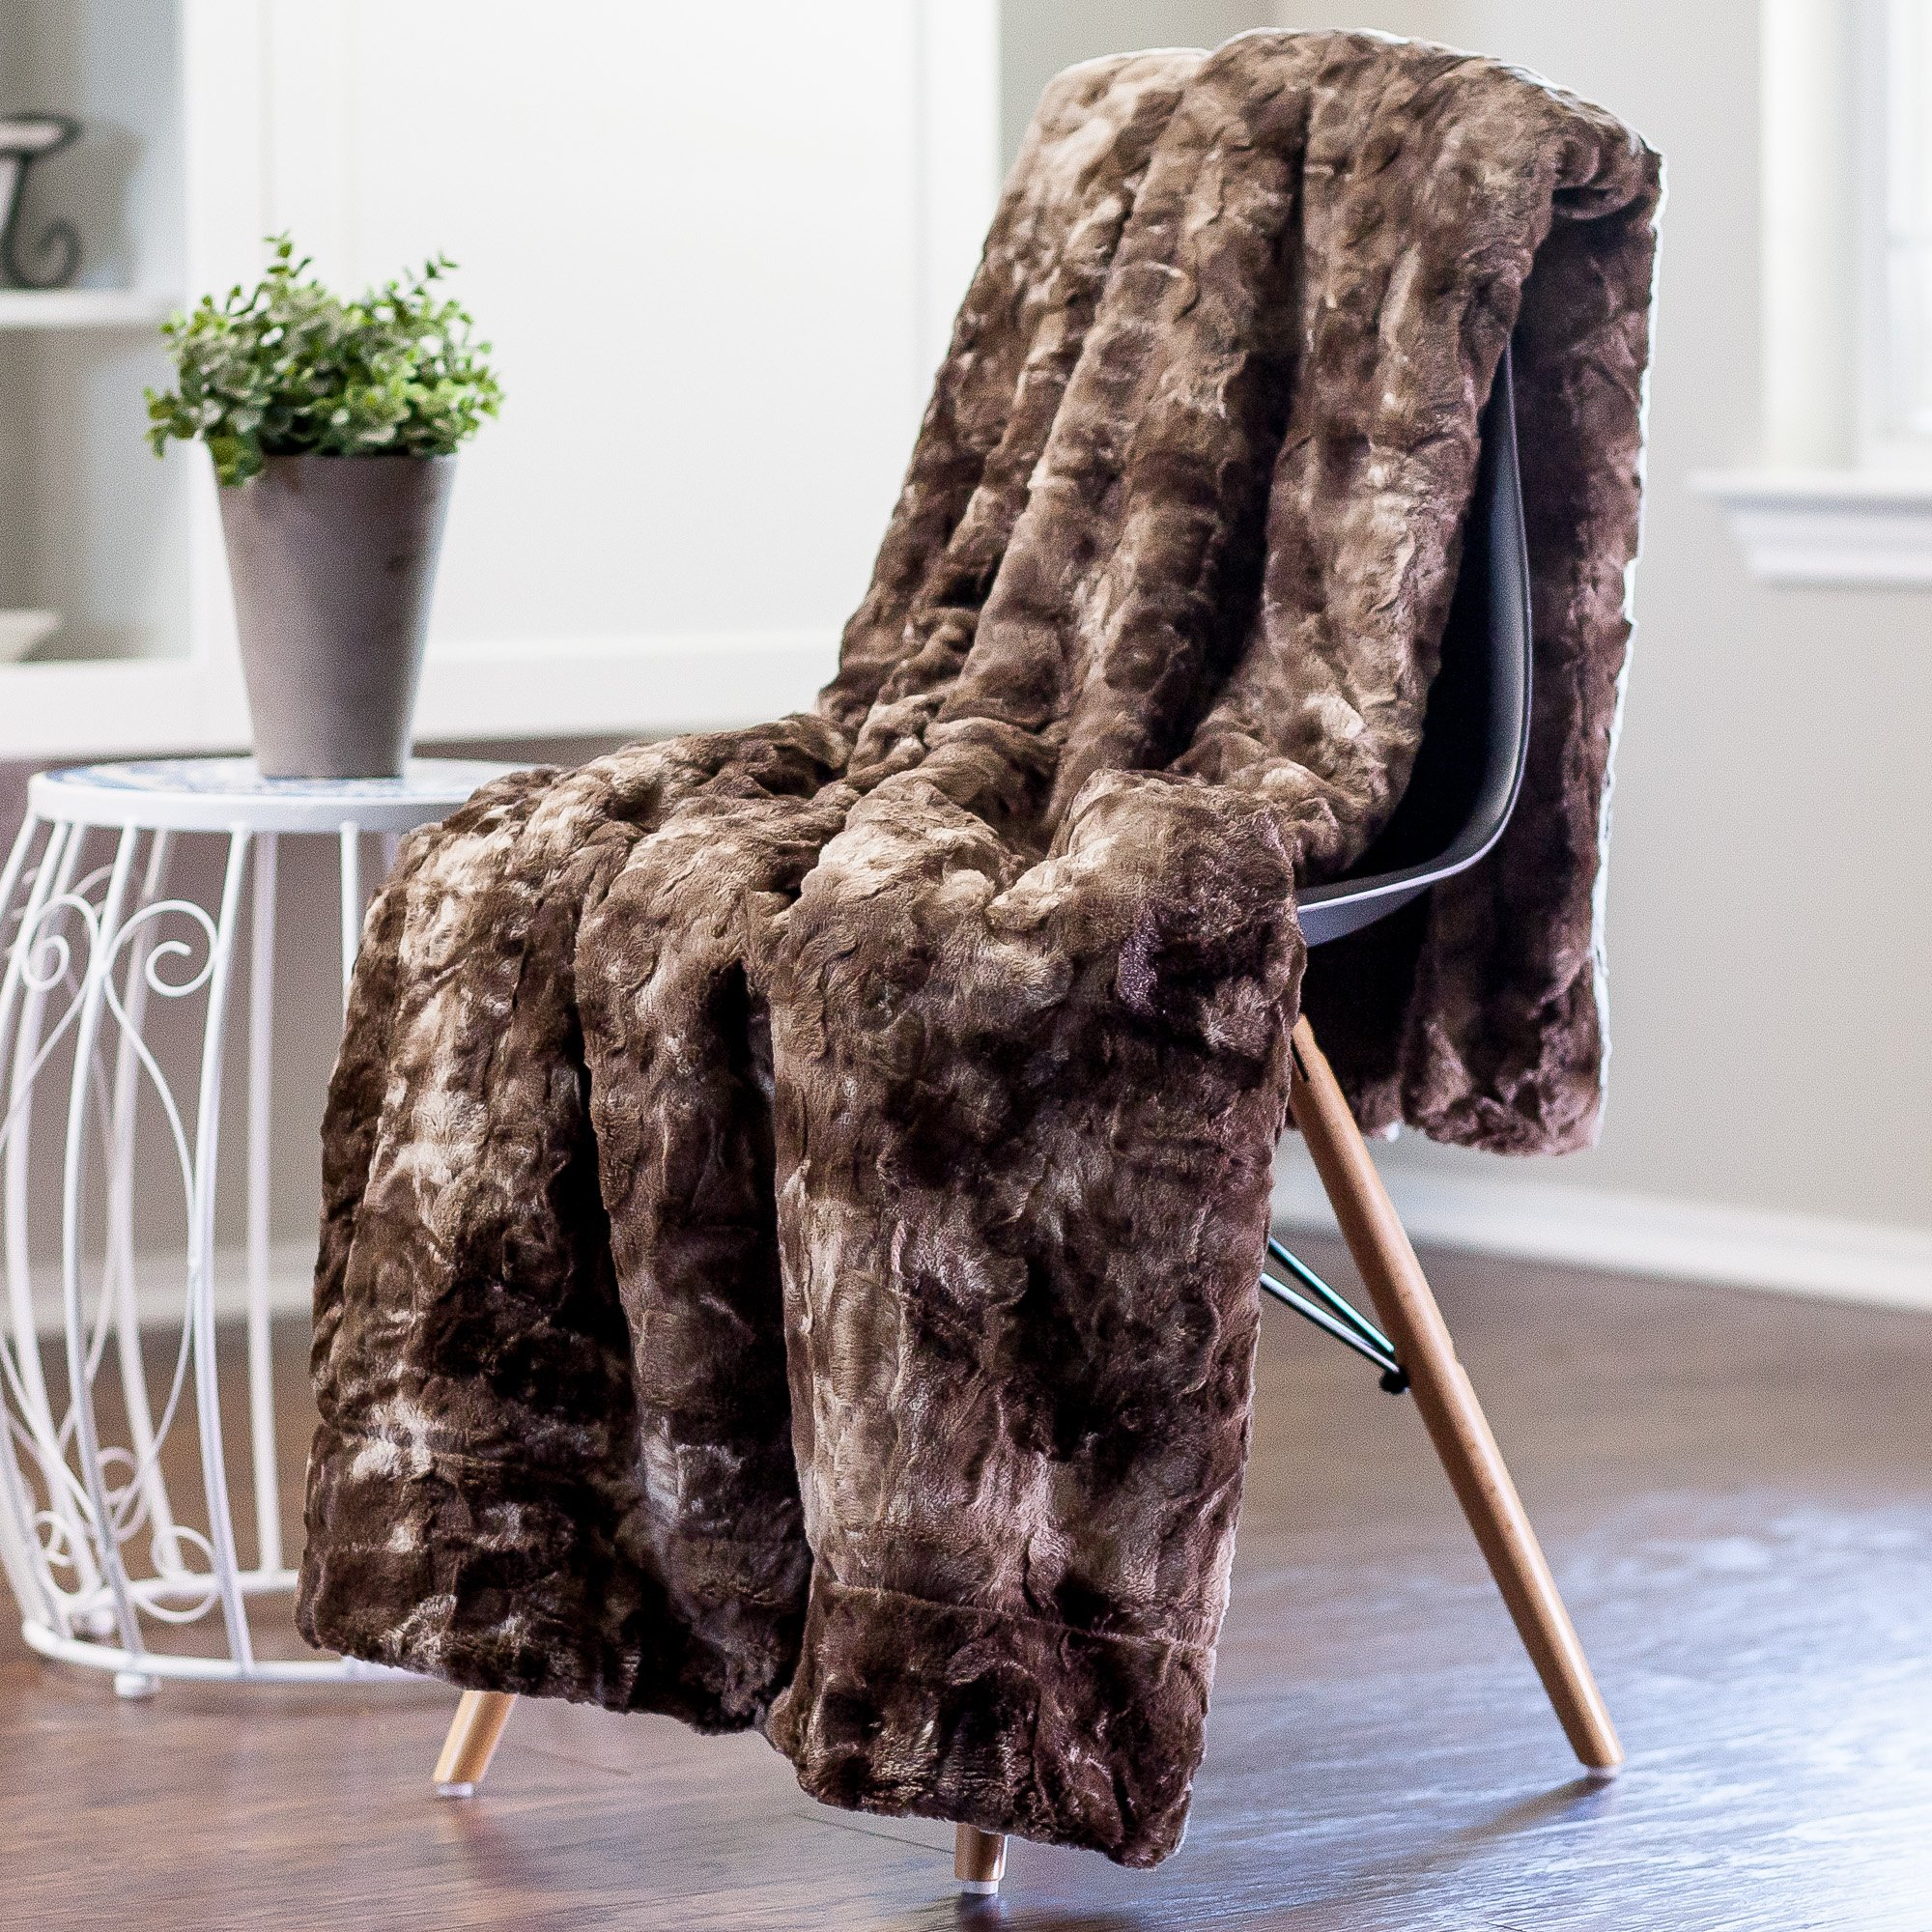 CDM product Chanasya Faux Fur Bed Blanket | Super Soft Fuzzy Light Weight Luxurious Cozy Warm Fluffy Plush Hypoallergenic Throw Blanket for Bed Couch Chair Fall Winter Spring Living Room (Queen)- Chocolate small thumbnail image